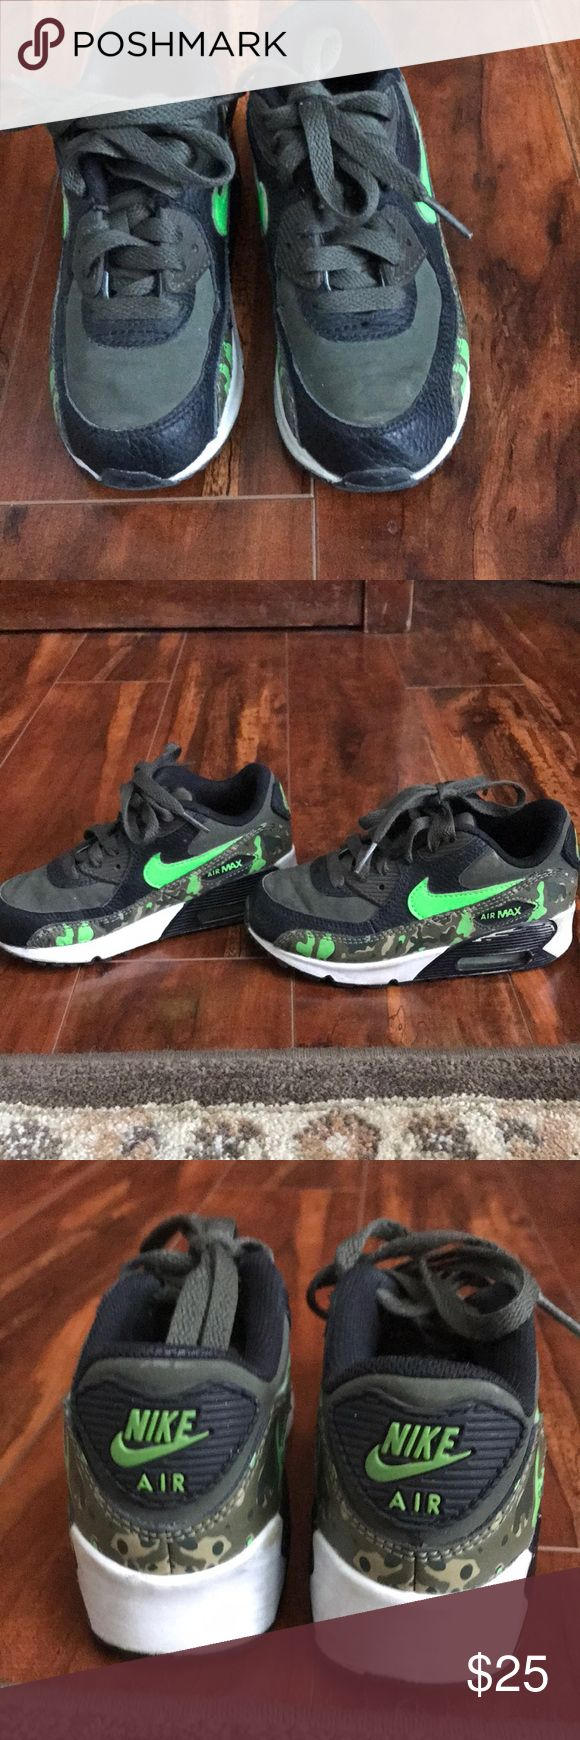 Boys Nike Air Max sneakers Boys Nike Air Max sneakers  Size: 11 C Olive green, camouflage, lime green, black, and white Thick sturdy sole with air shocks  Lace up Toe bumper Excellent condition Nike Shoes Sneakers